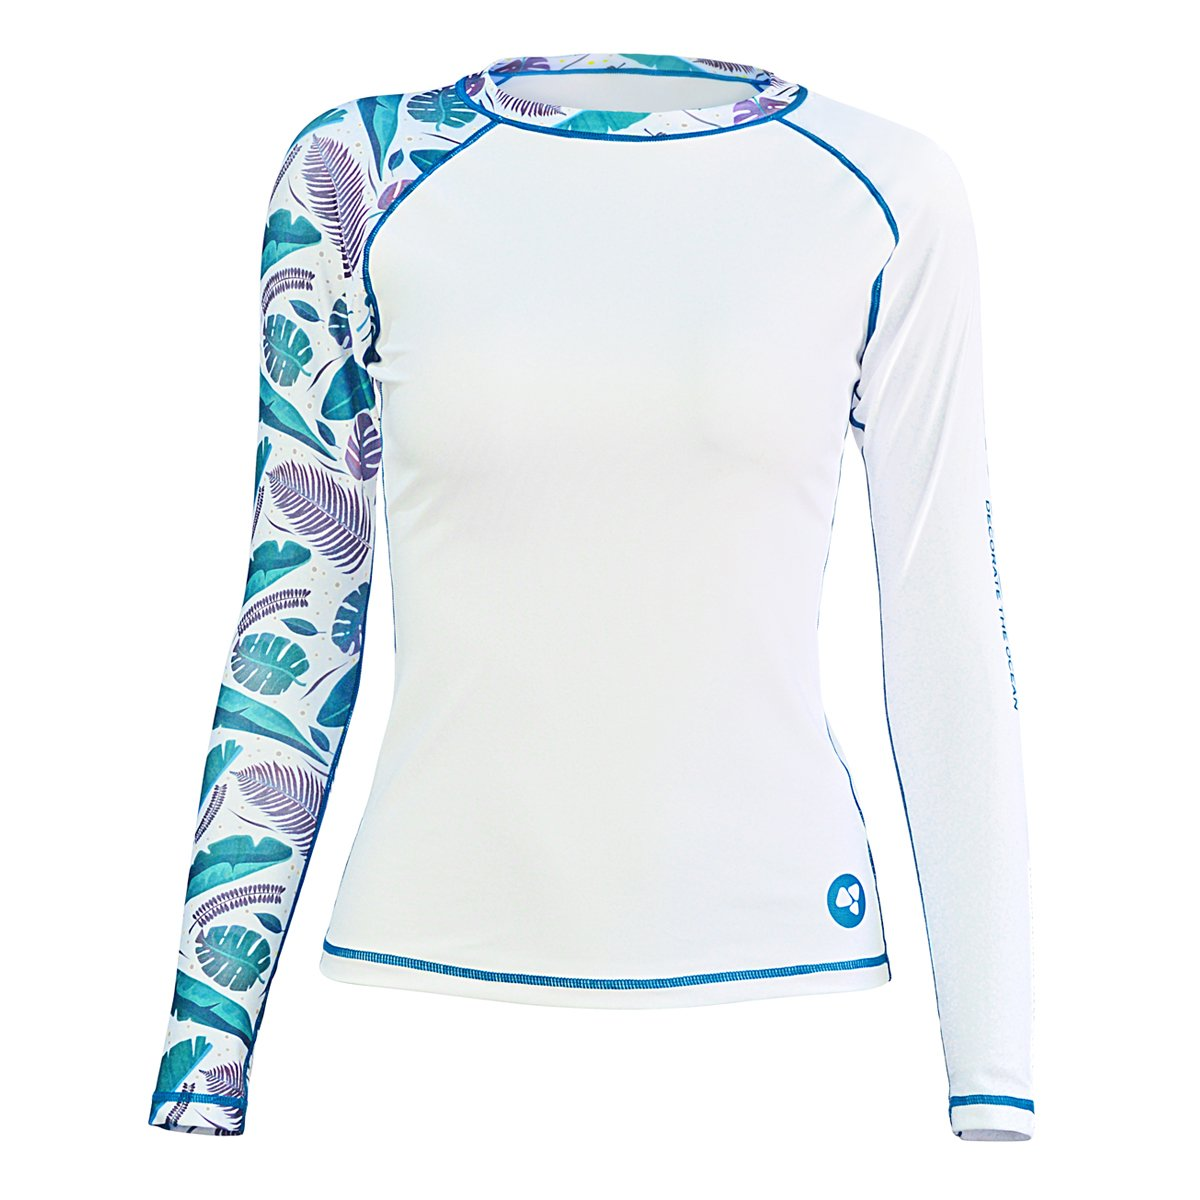 LayaTone Rash Guard Women Long Sleeves Swimsuit Swimwear Tops Girl Dive Skin Surf Suit Water Sports T-Shirts Girl by LayaTone